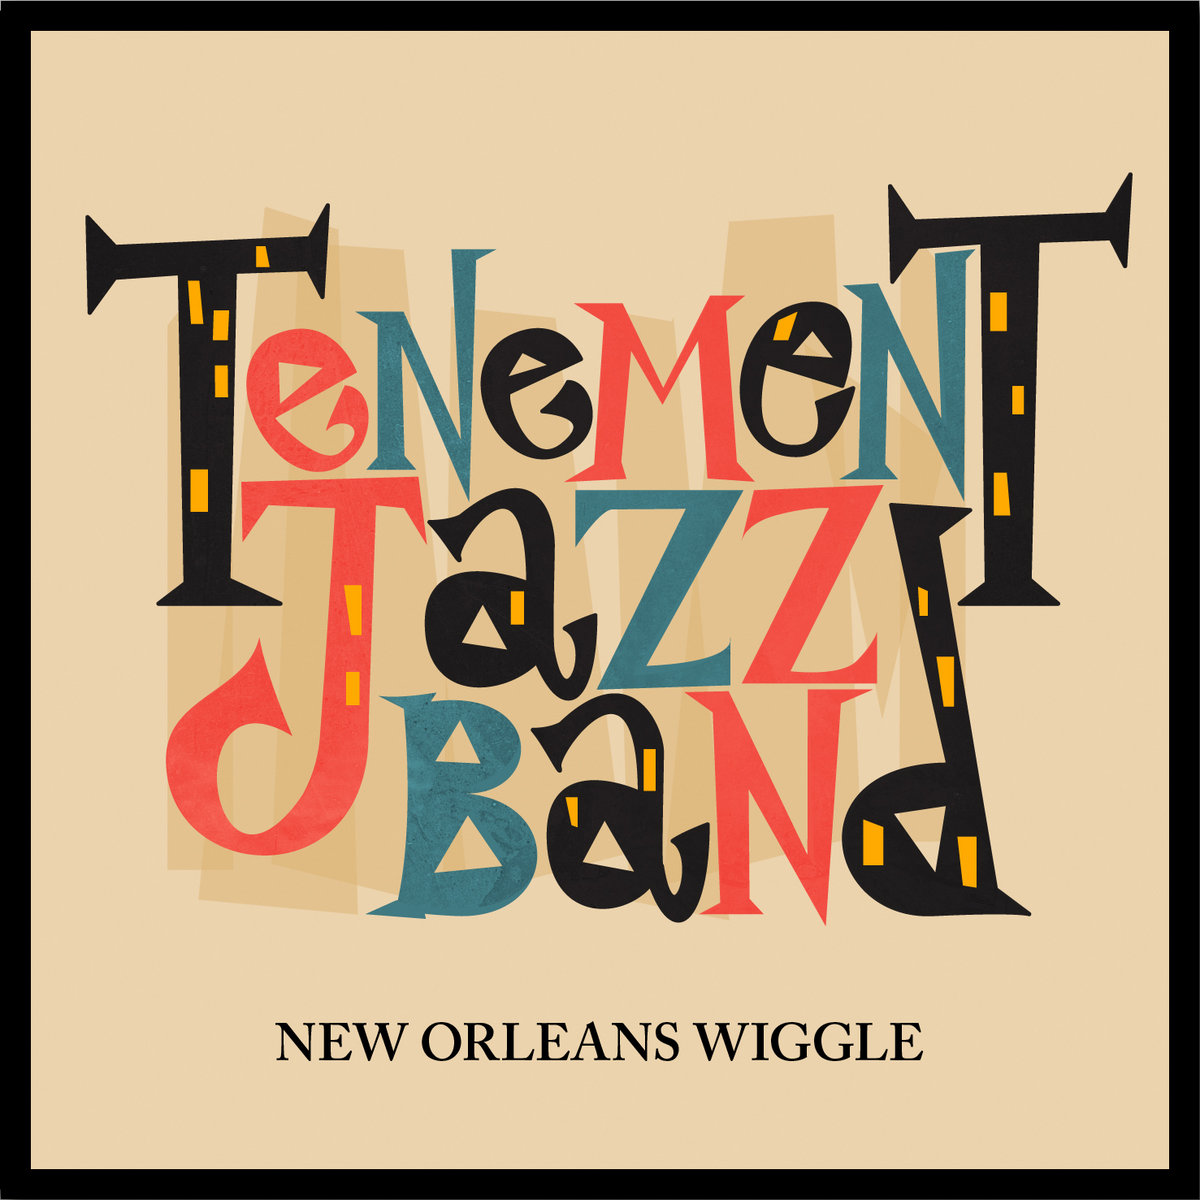 Big Chief Battle Axe | Tenement Jazz Band